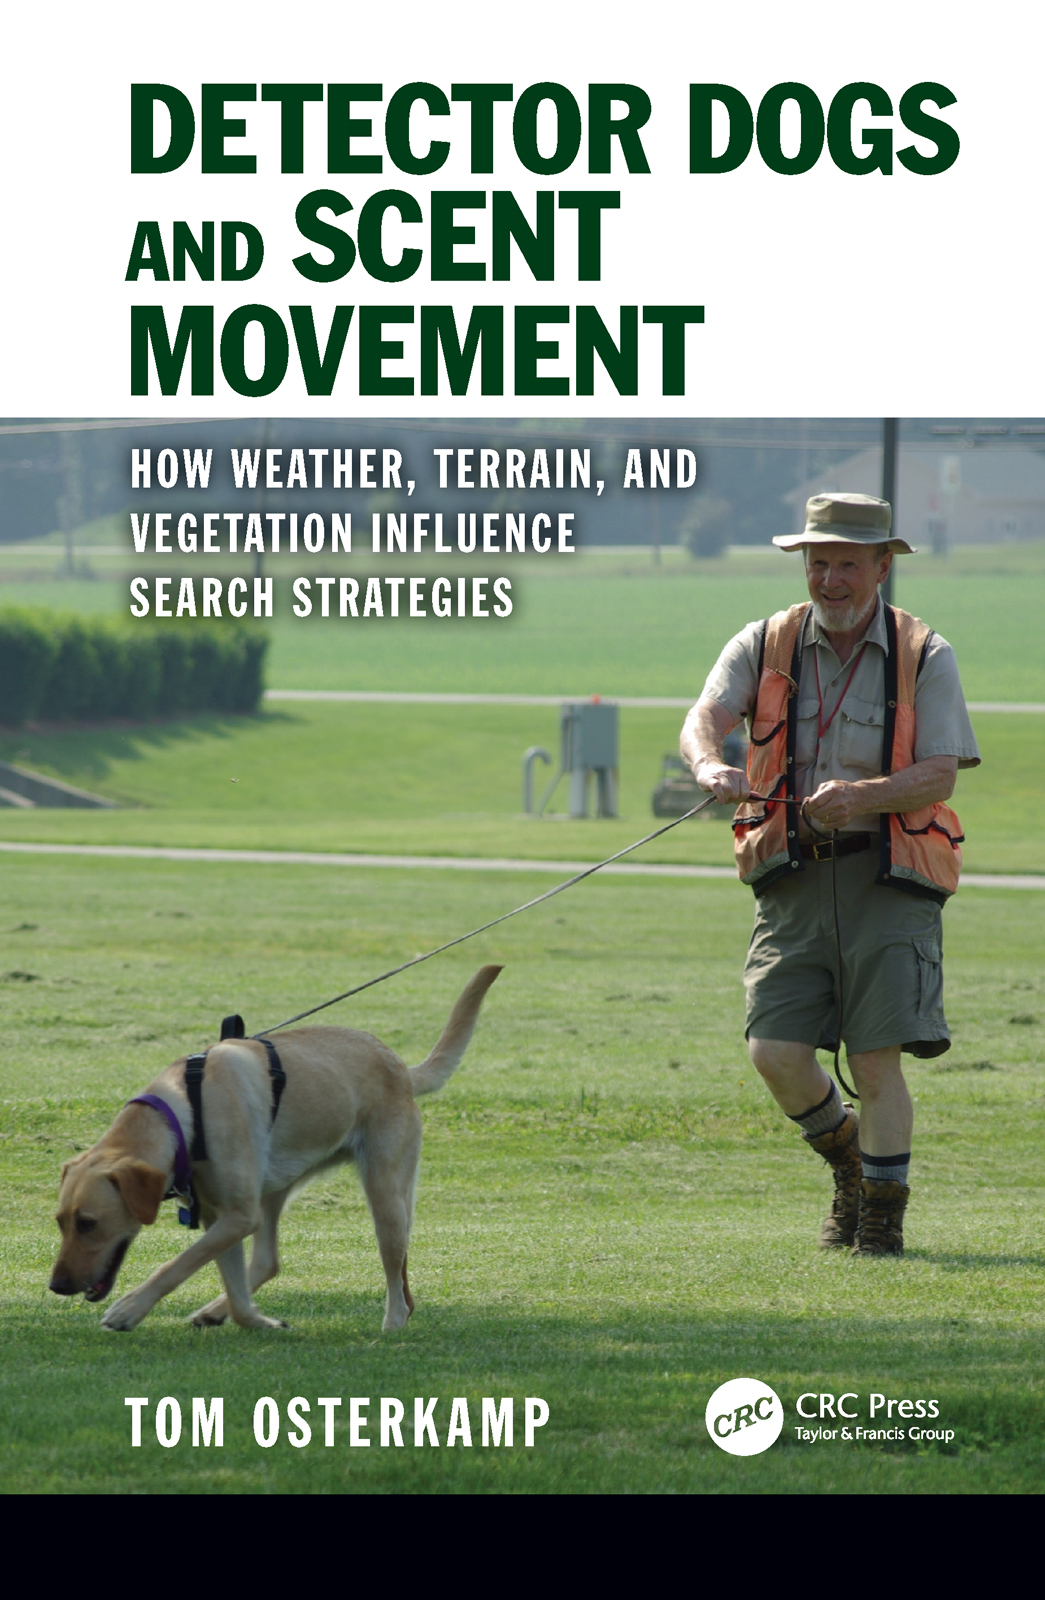 Detector Dogs and Scent Movement: How Weather, Terrain, and Vegetation Influence Search Strategies book cover